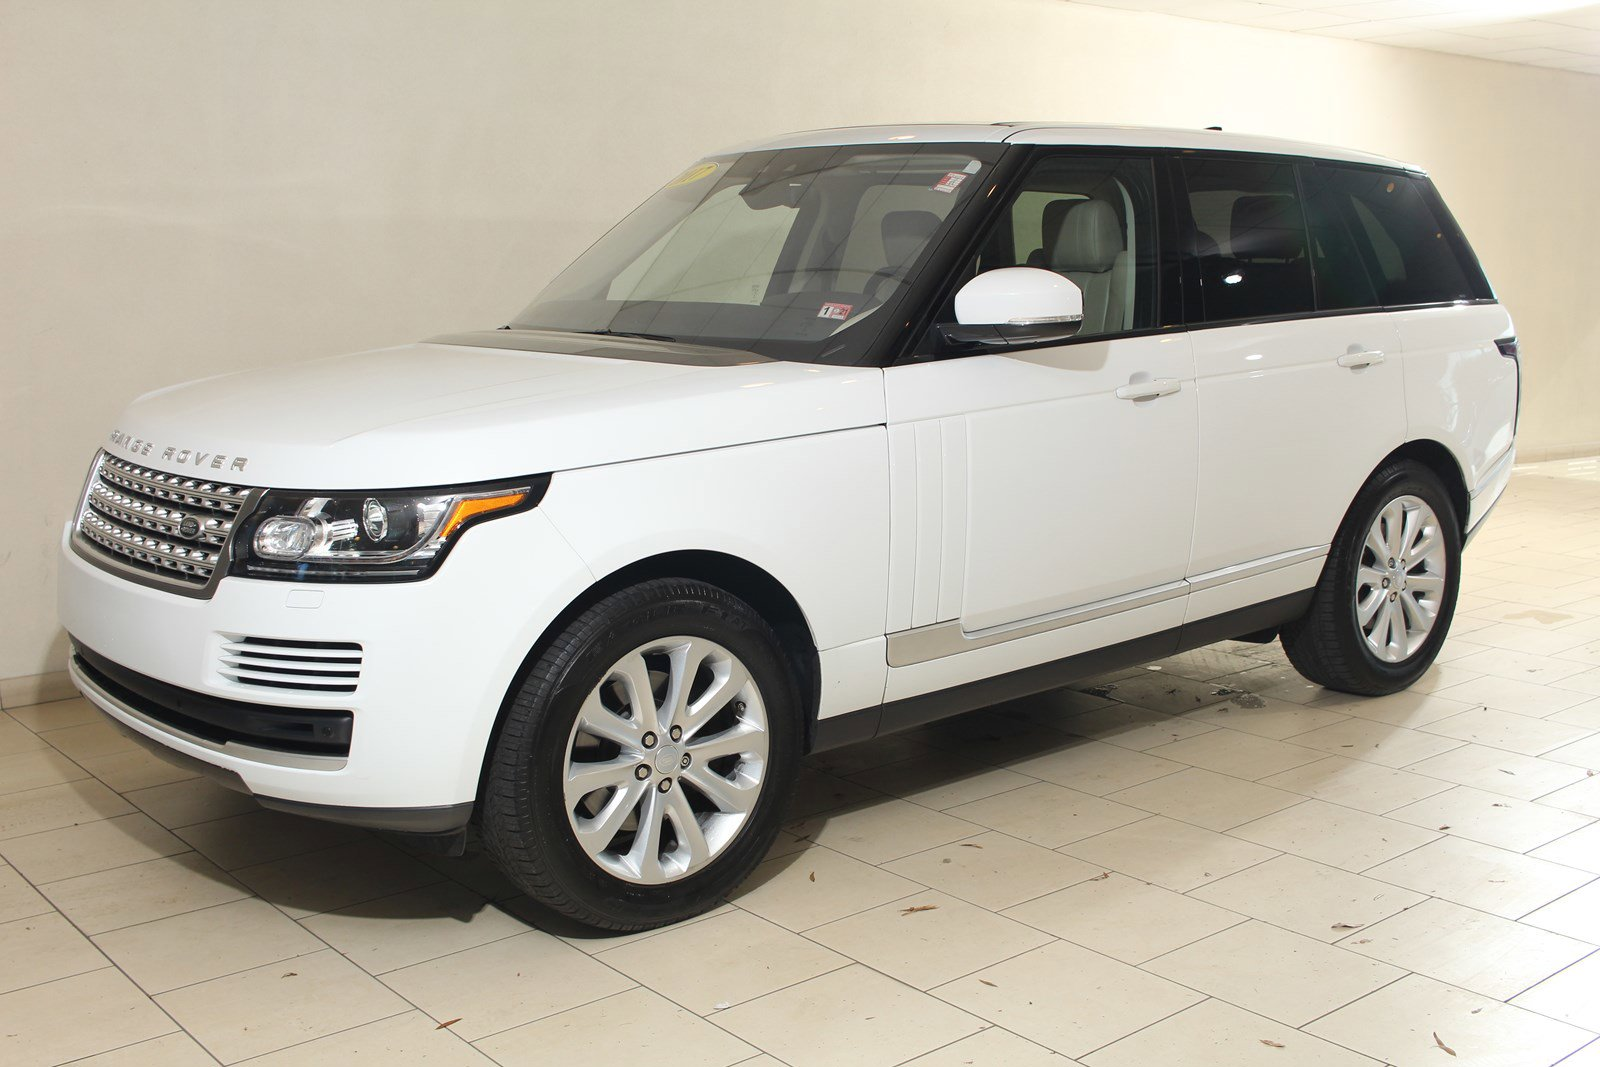 2017 Land Rover Range Rover HSE image